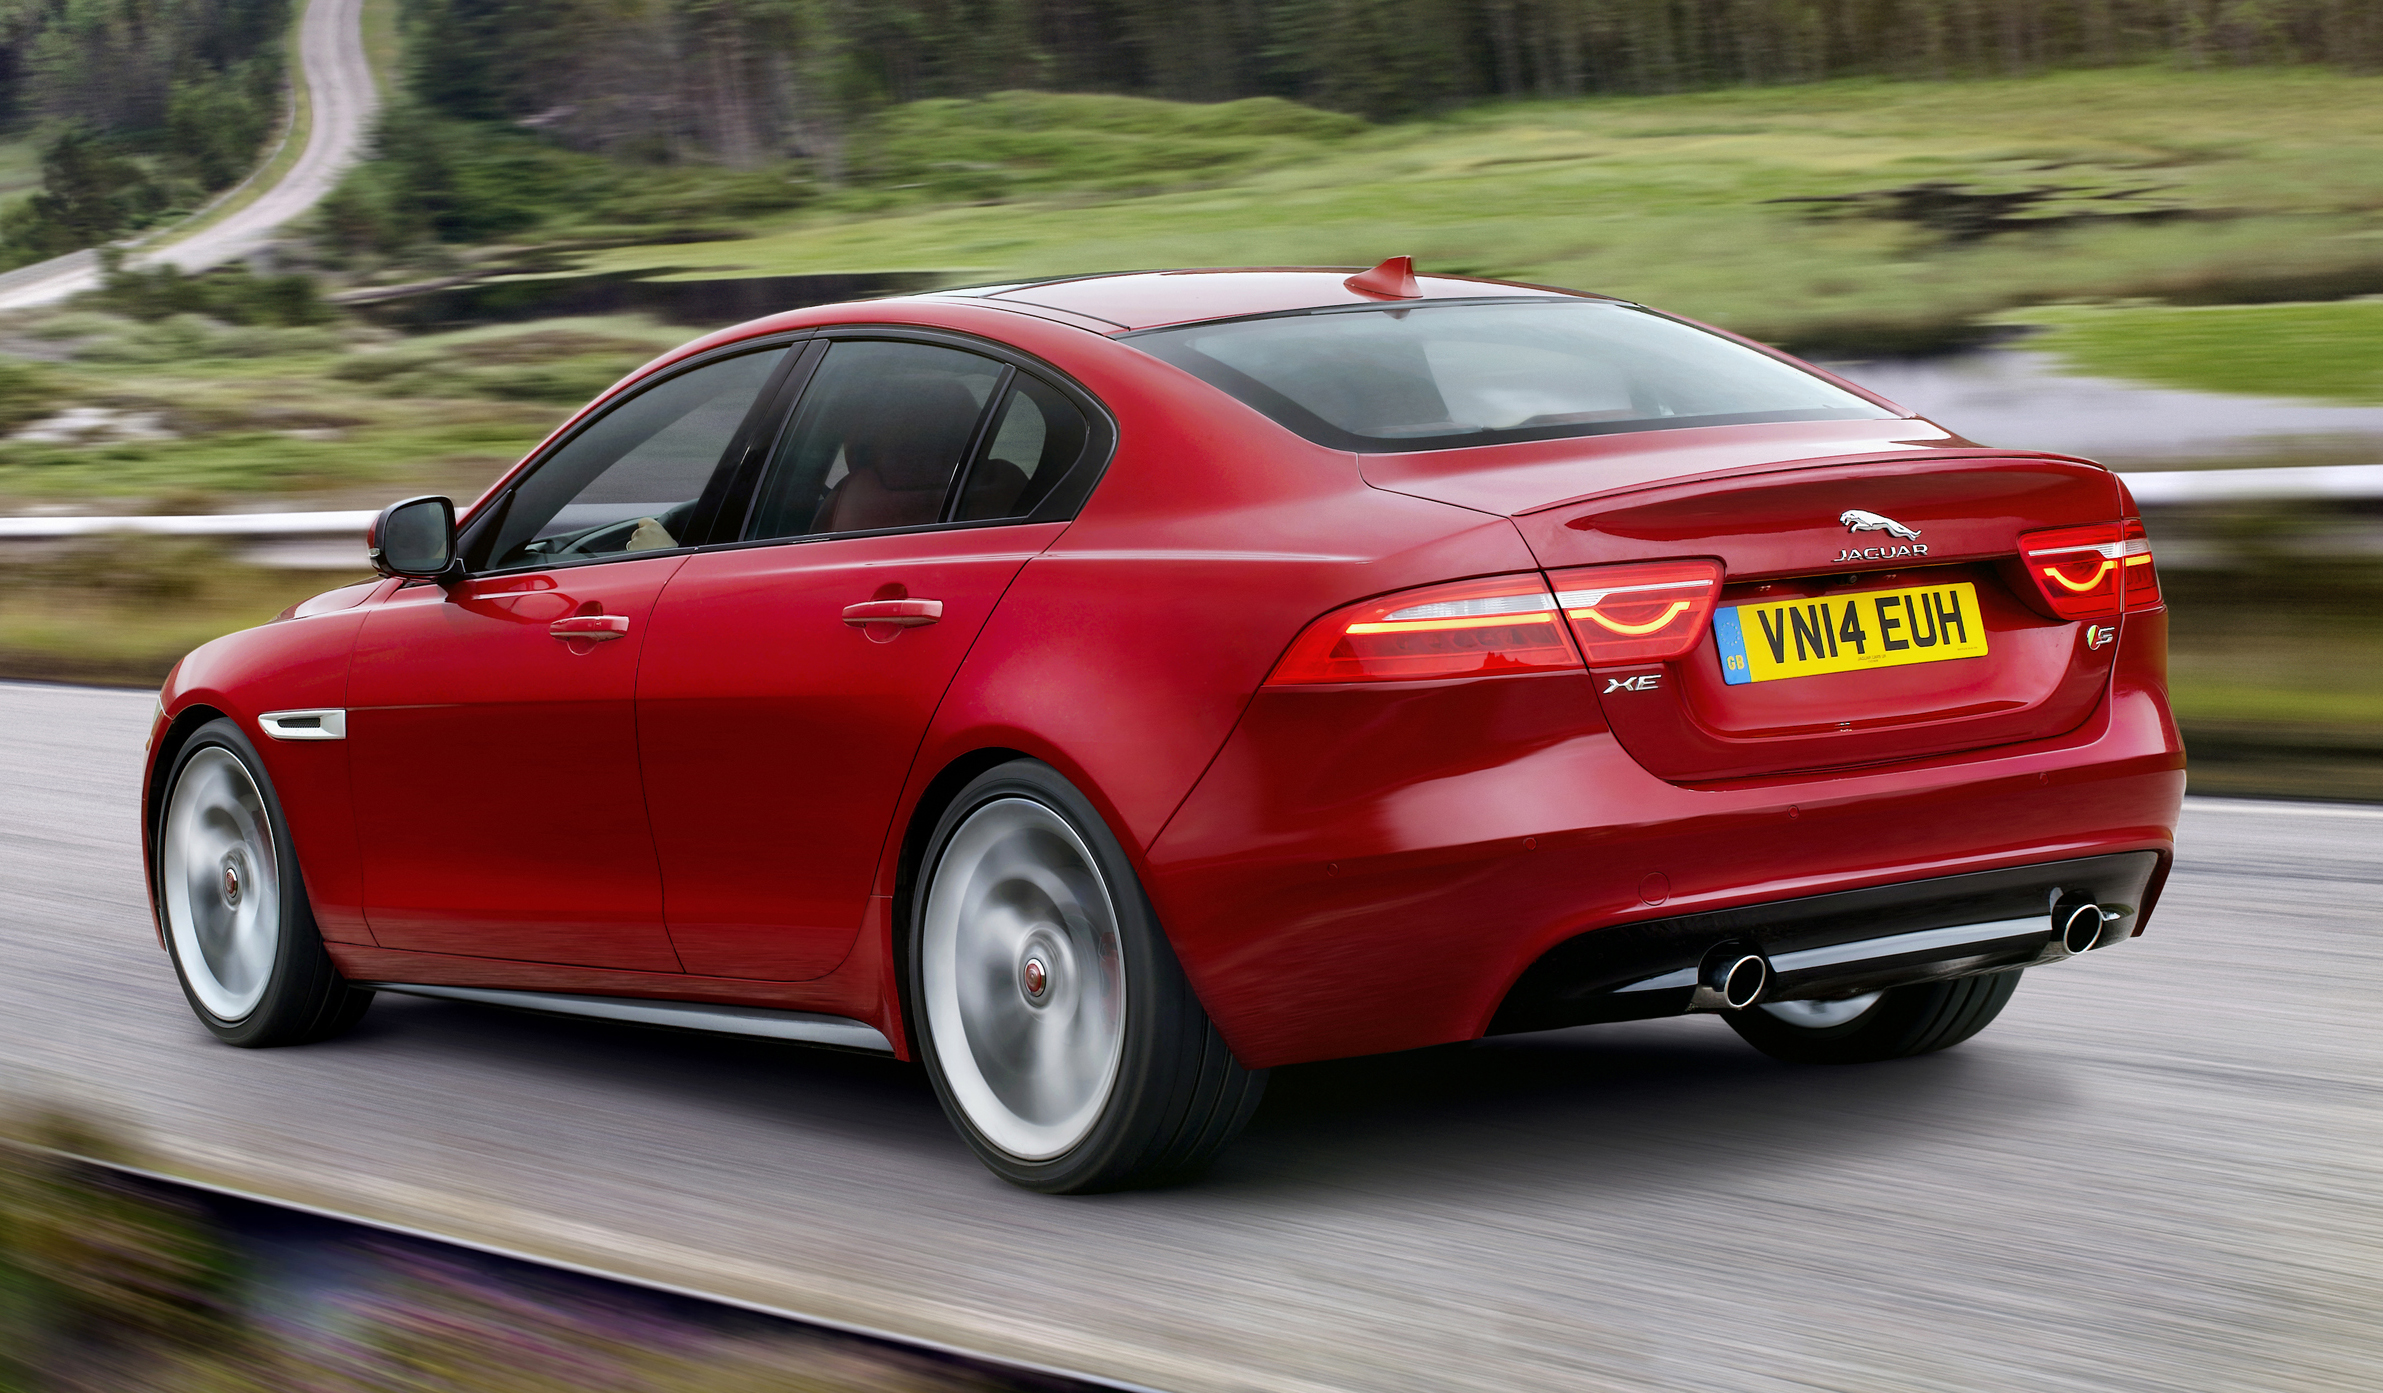 new jaguar xe set to pounce on fleet market wheel world reviews. Black Bedroom Furniture Sets. Home Design Ideas